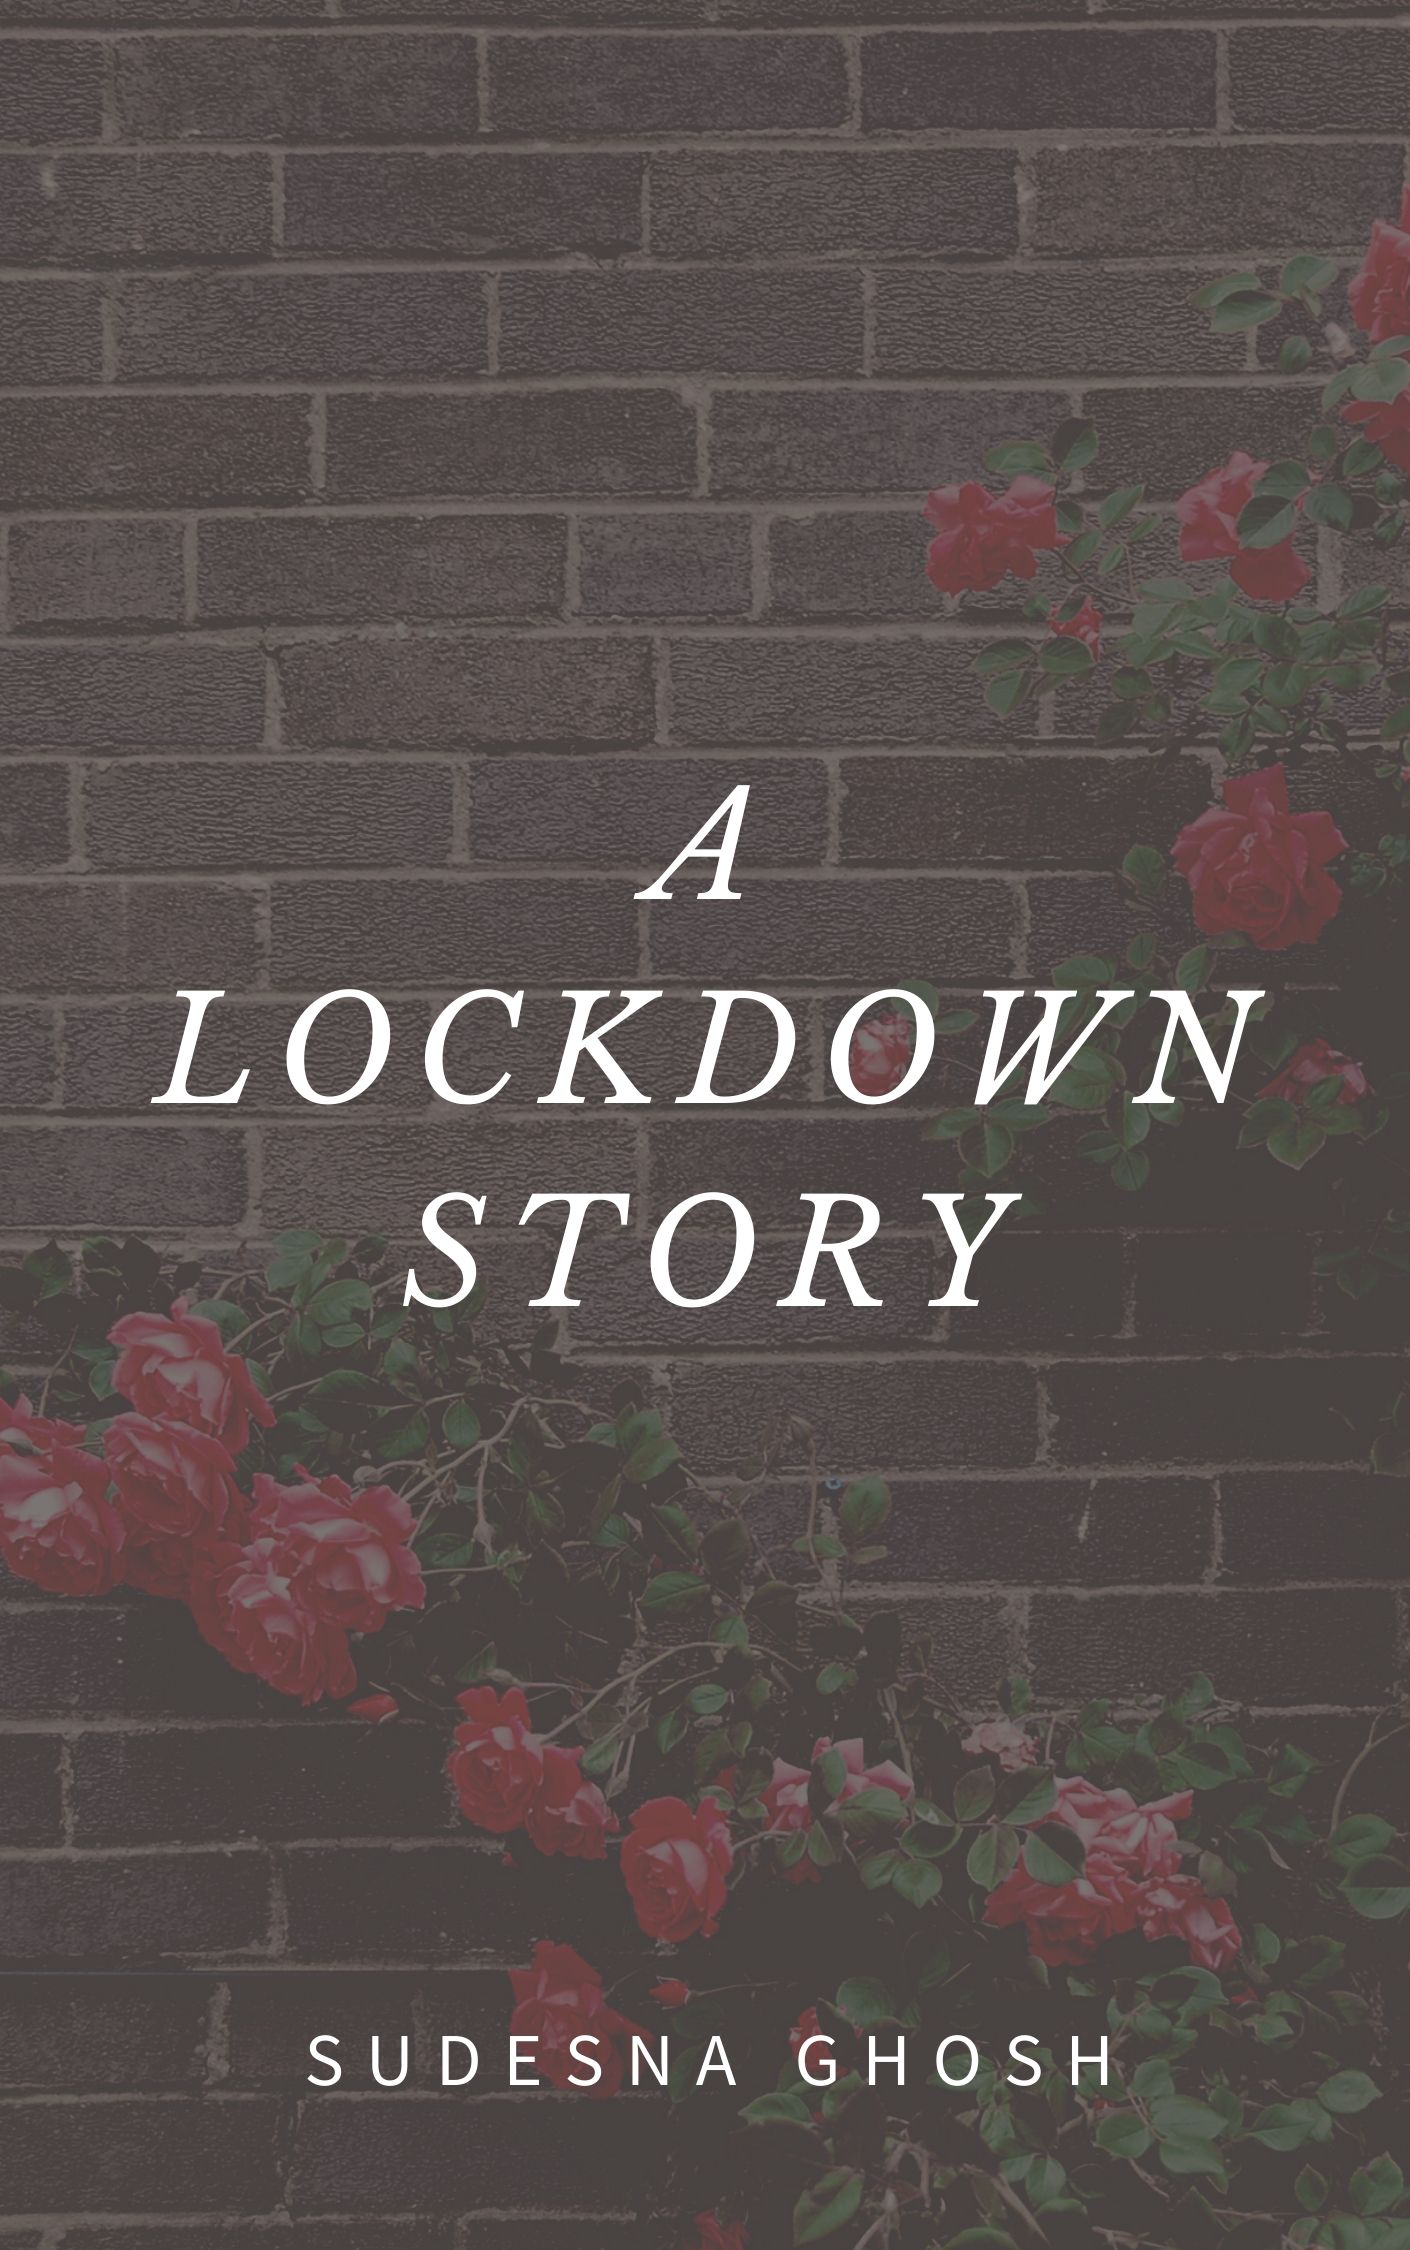 A Lockdown Story